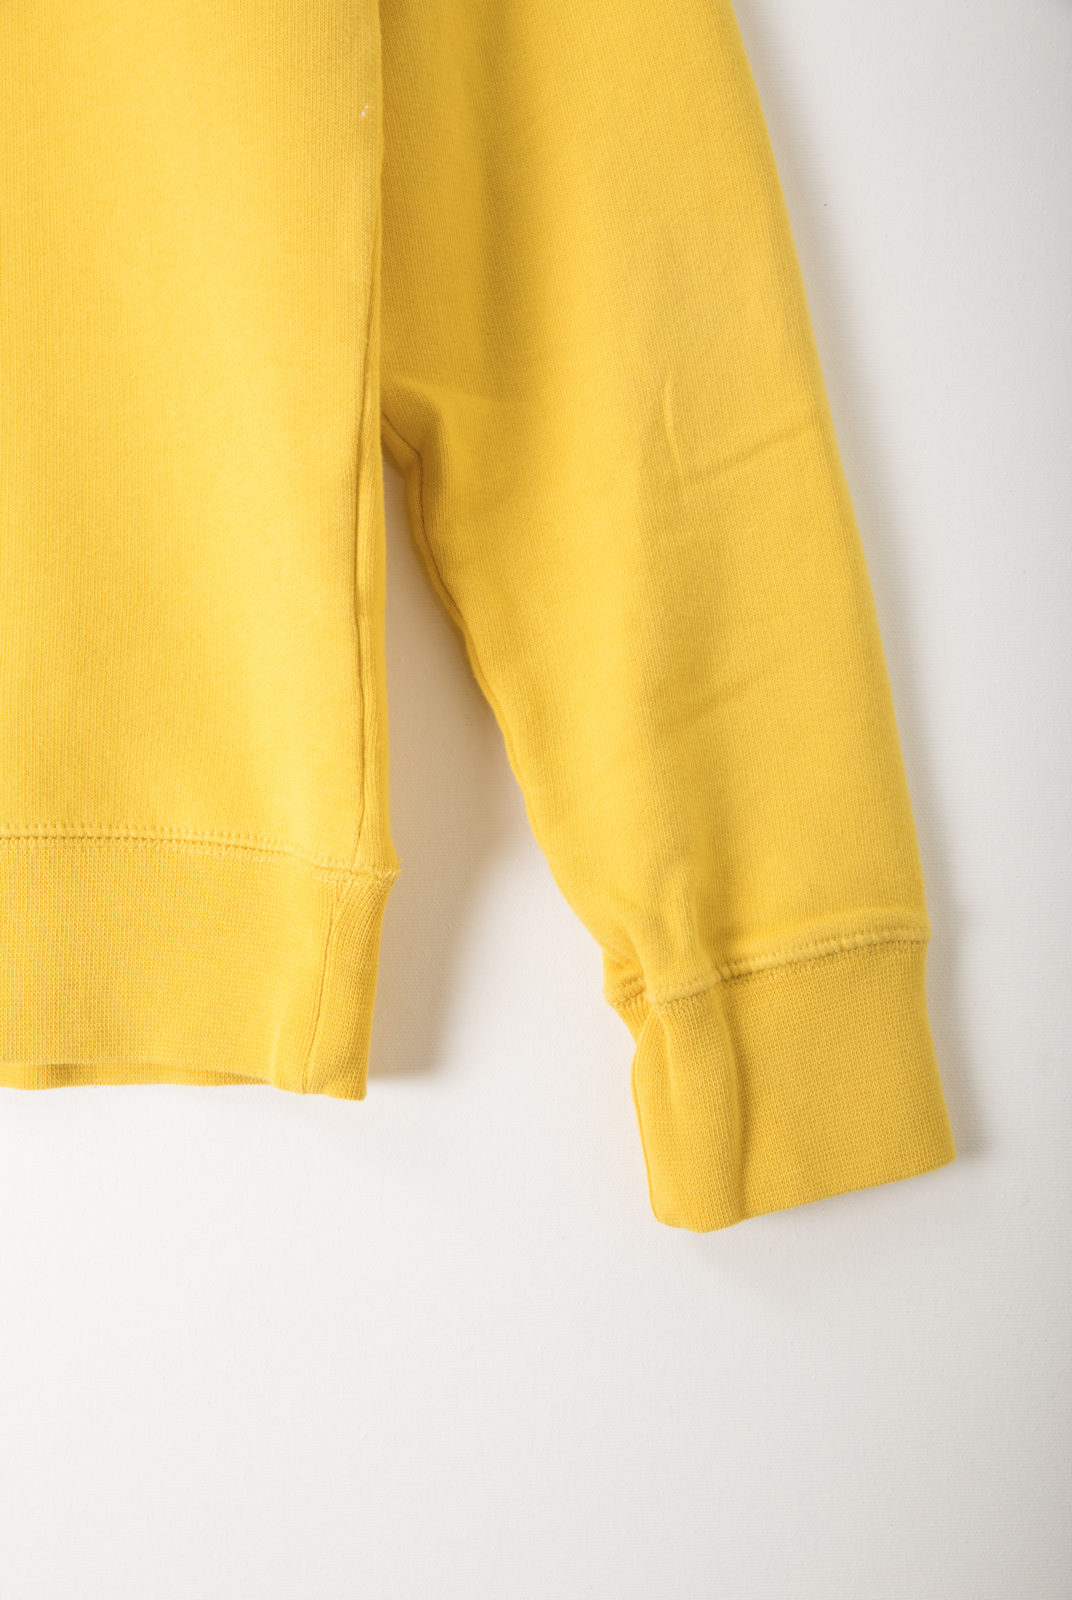 sweat, holiday, jaune, coton, encolure ronde, manches longues, holiday